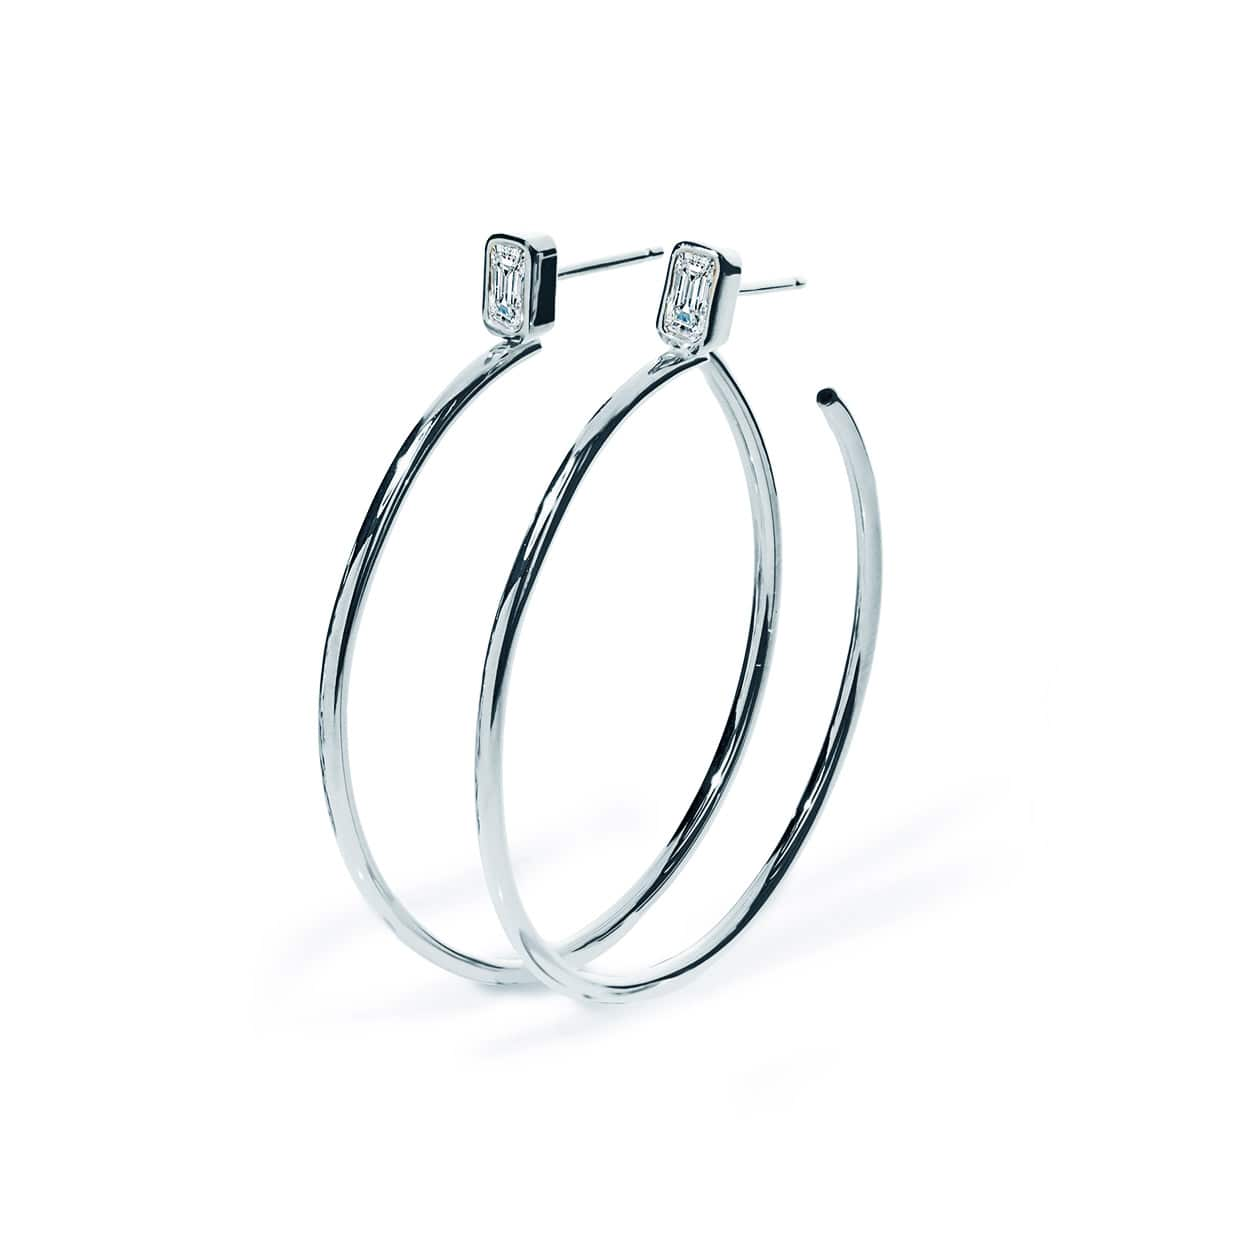 Oxford Silver Emerald Classic Hoop Earrings - Abelstedt